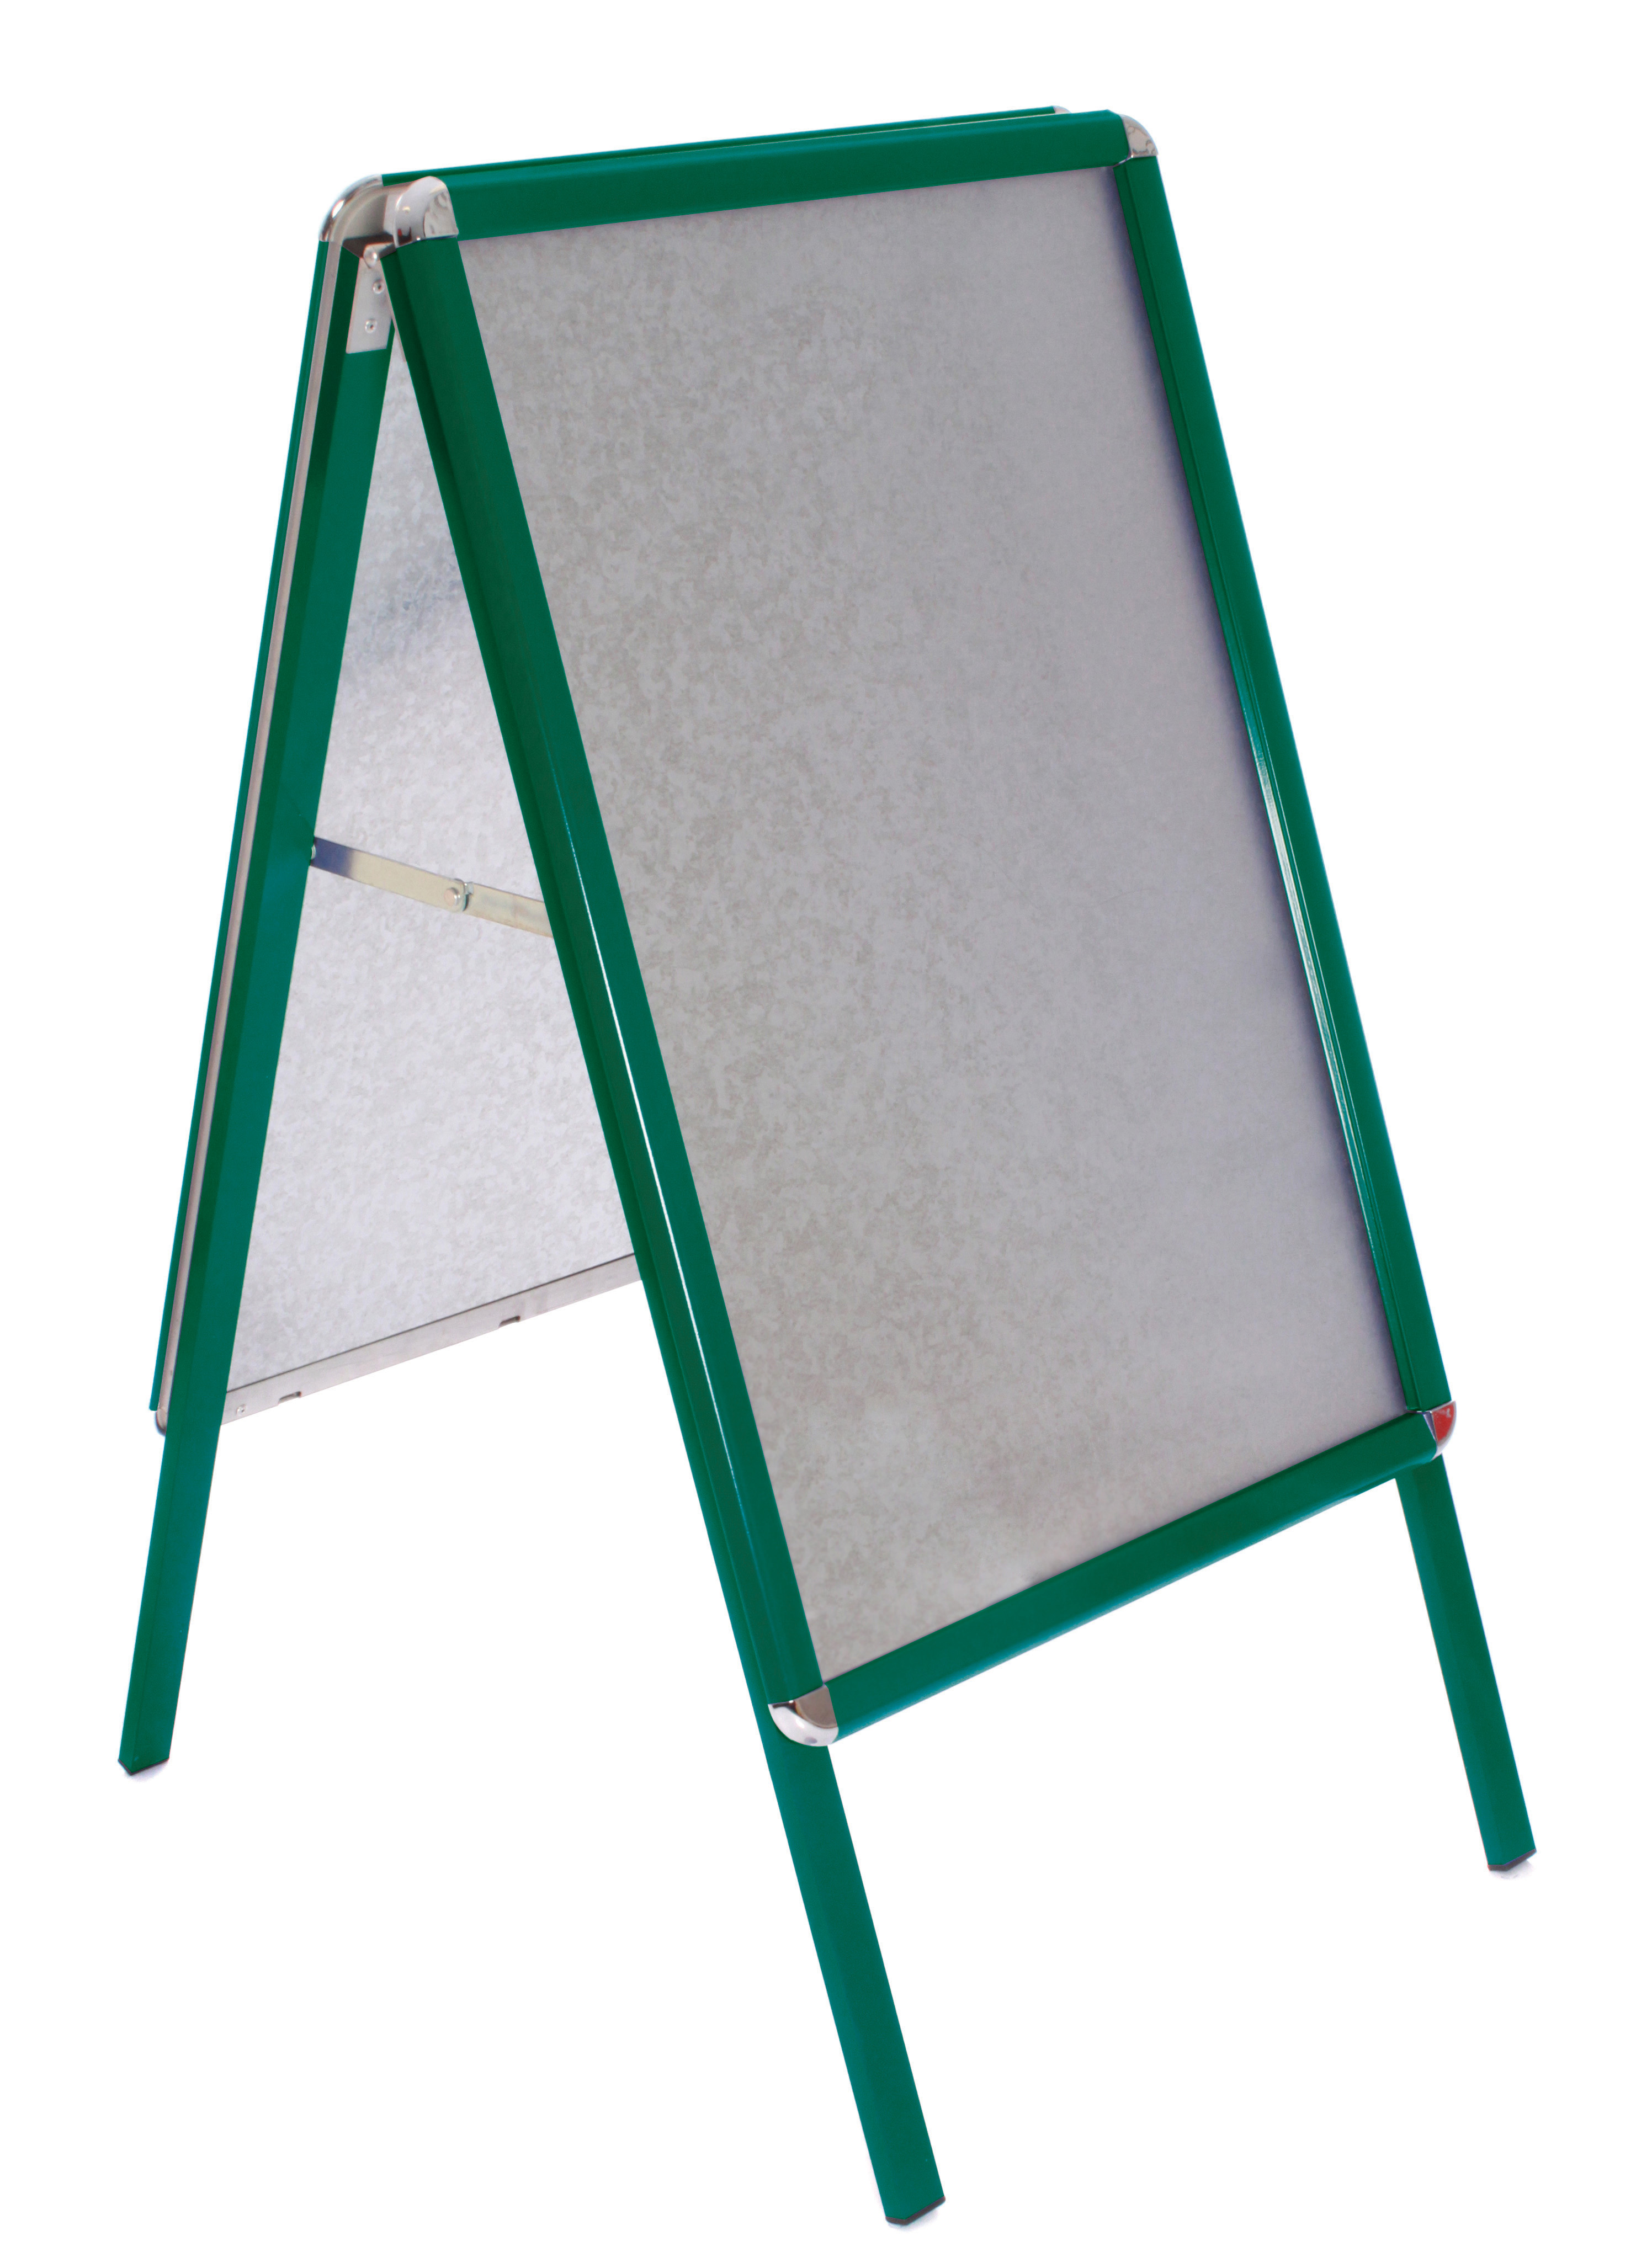 A Board Pavement Sign 30 X 40 Inch Snap Frame A Board Green Frame